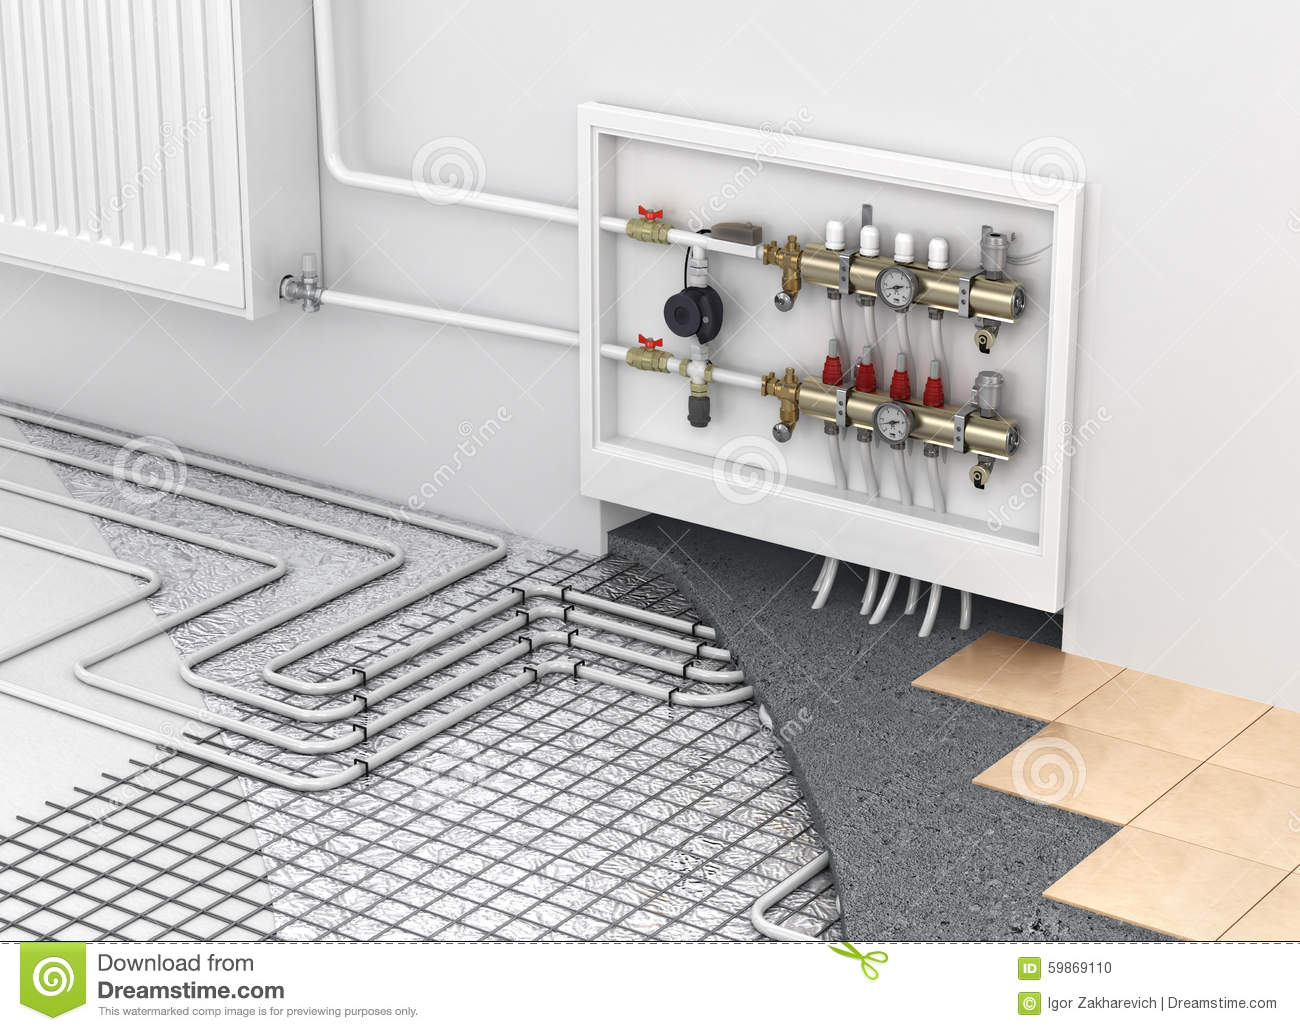 Underfloor Heating With Collector And Radiator In The Room